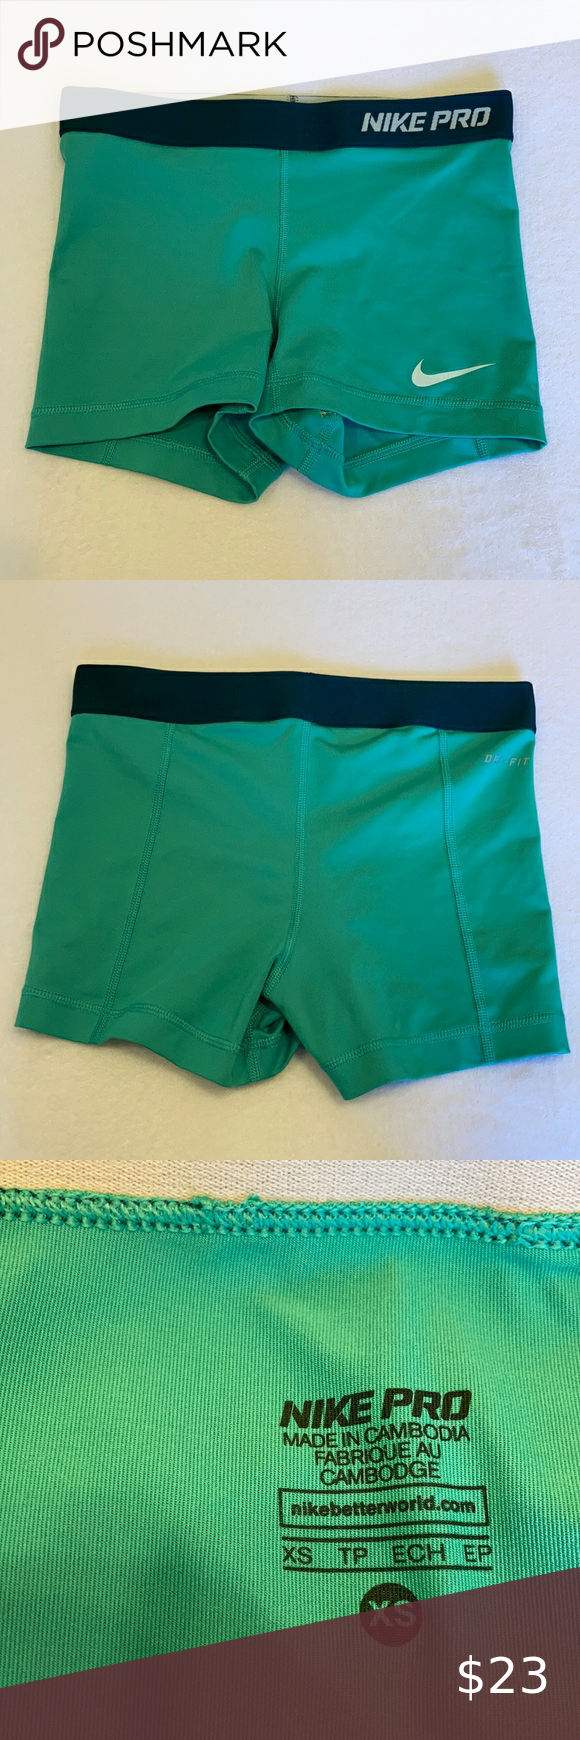 Nike Pro Volleyball Shorts Spandex In 2020 Volleyball Shorts Nike Pros Volleyball Shirts